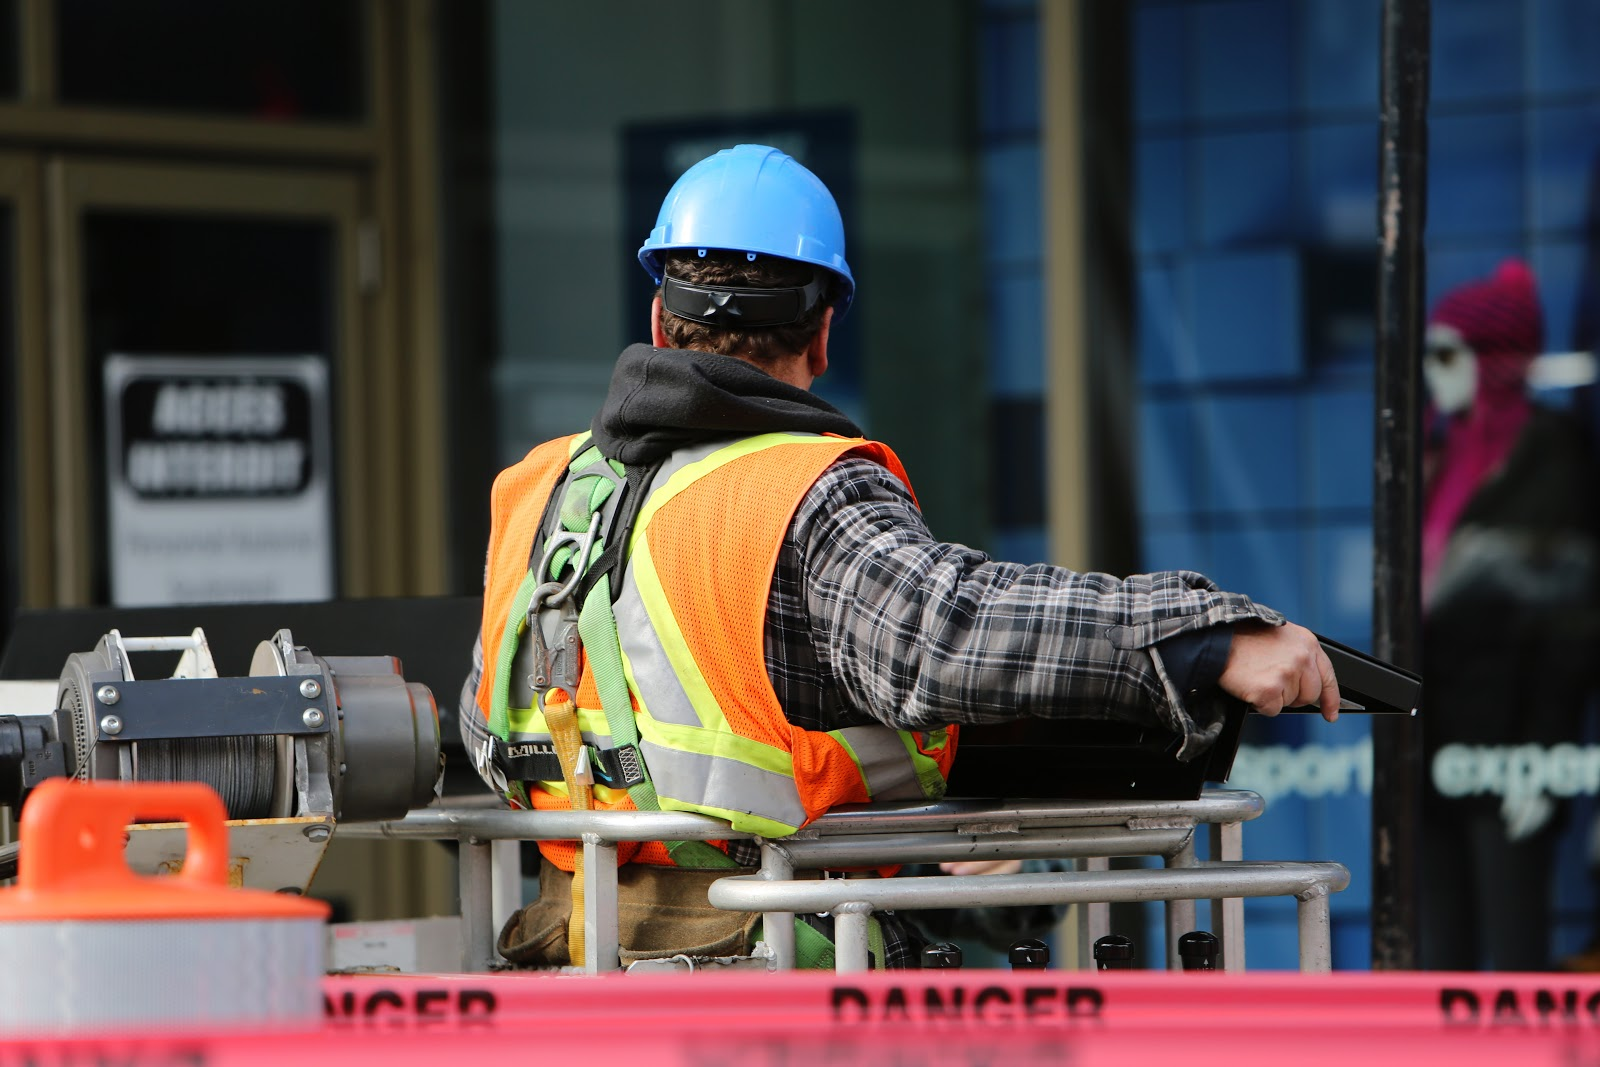 3 Ways to Keep on Top of Health and Safety in Your Company